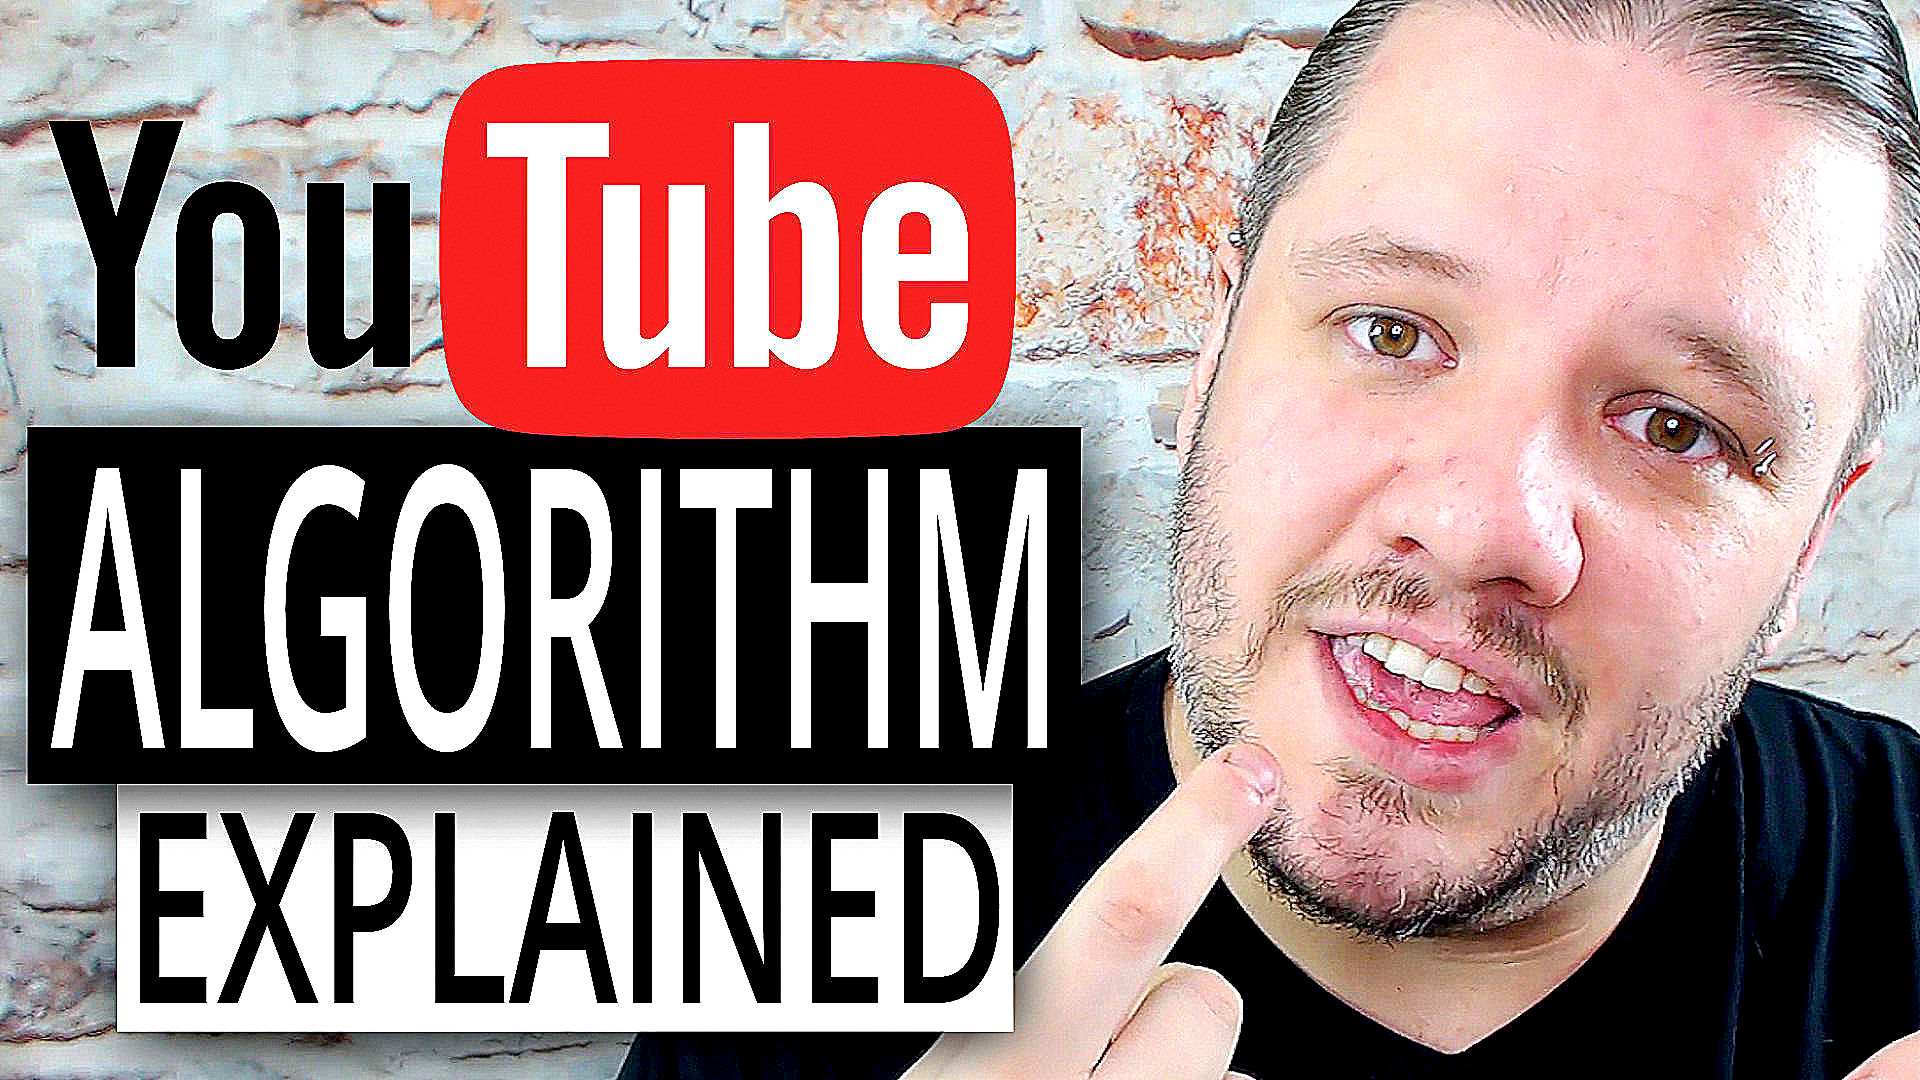 alan spicer,alanspicer,youtube tips,youtube tricks,asyt,YouTube Algorithm Explained,YouTube Algorithm Explain,YouTube Algorithm,Algorithm Explained,Algorithm Explain,What Is The YouTube Algorithm?,youtube,algorithm,explain youtube algorithm,explain the youtube algorithm,youtube search algorithm,youtube search,youtube search results,youtube algorithm 2017,youtube algorithm update,youtube algorithm change,YouTube Algorithm 2018,explaining the youtube algorithm